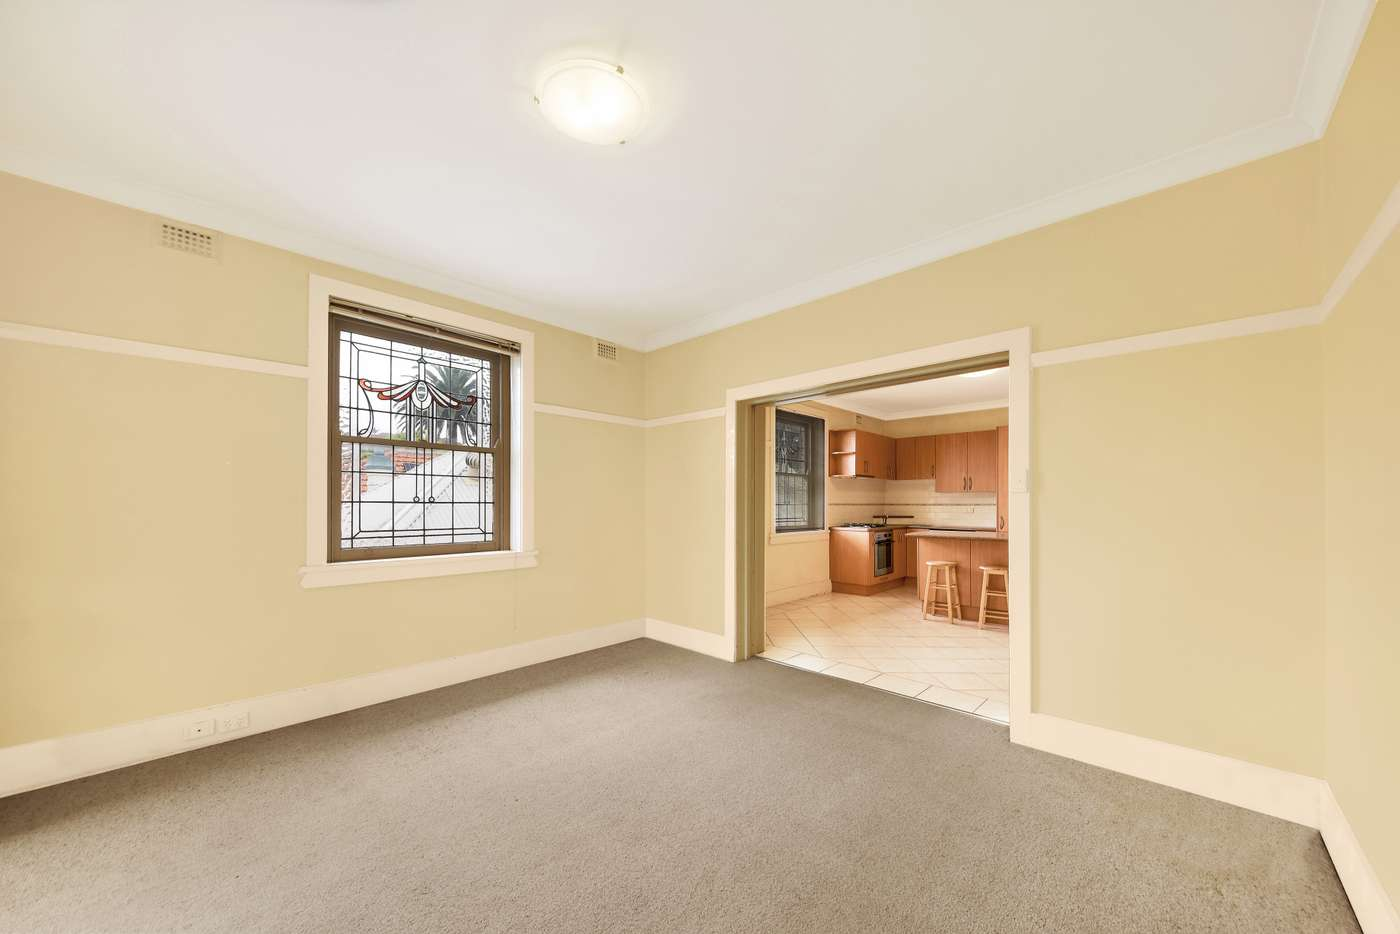 Main view of Homely apartment listing, 3/14 Florence Street, Cremorne NSW 2090